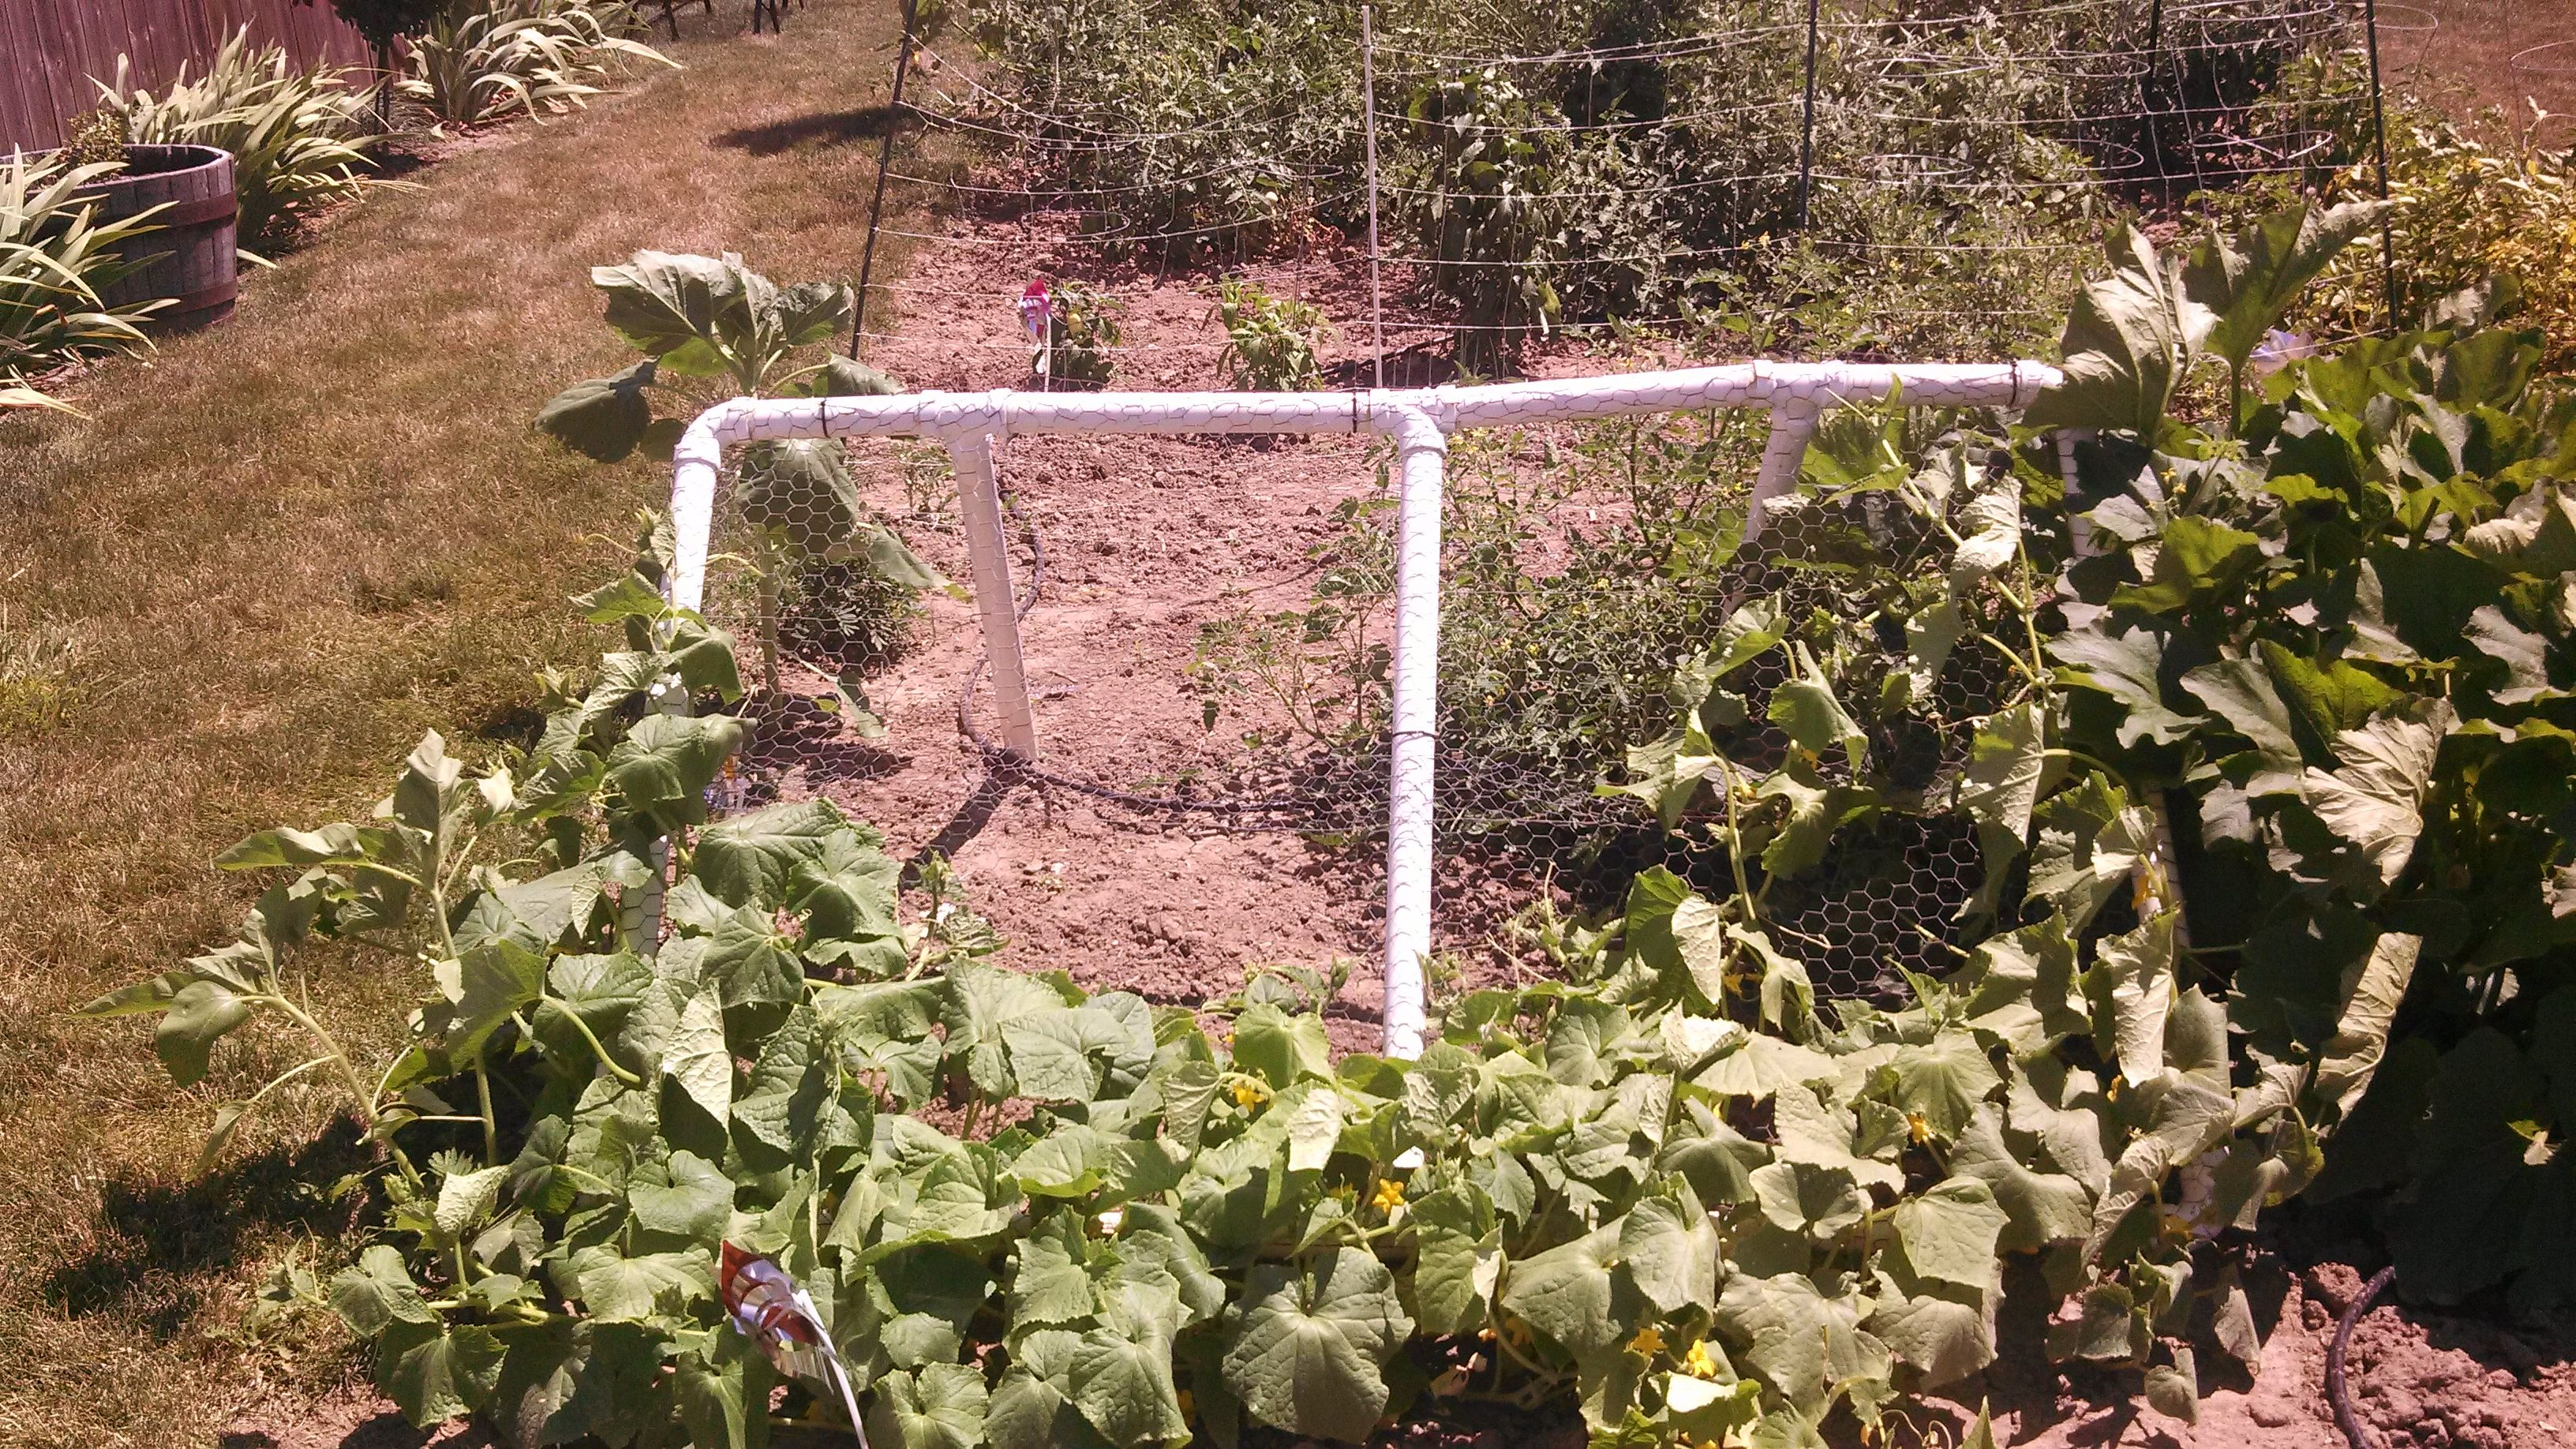 Cucumber Trellis Made From Pvc Pipe